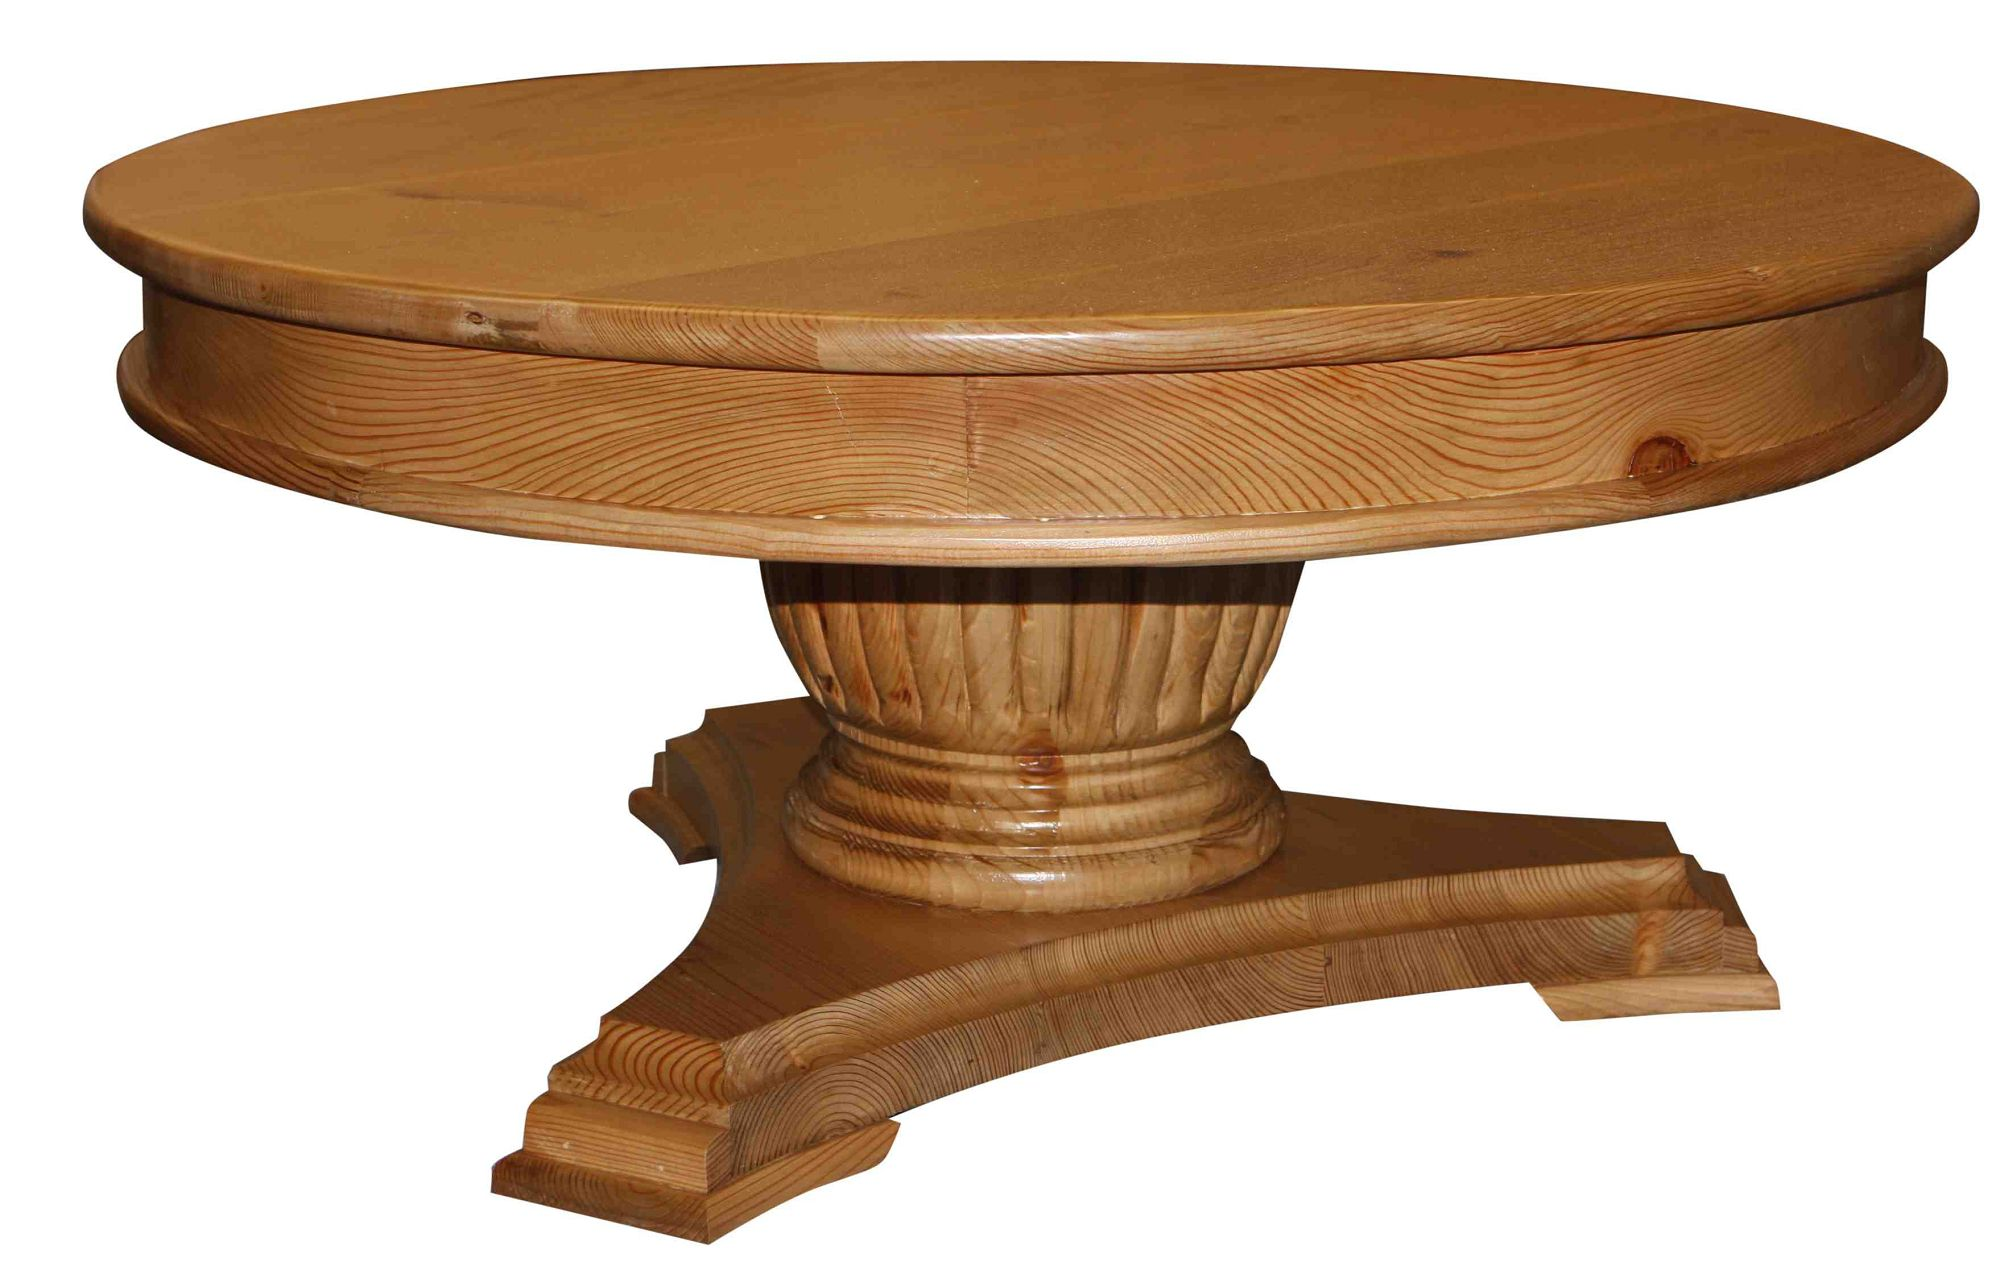 Kitchen Table Round Wood Modern Solid Wood Round Dining Table Full Size Of Dinning Stone